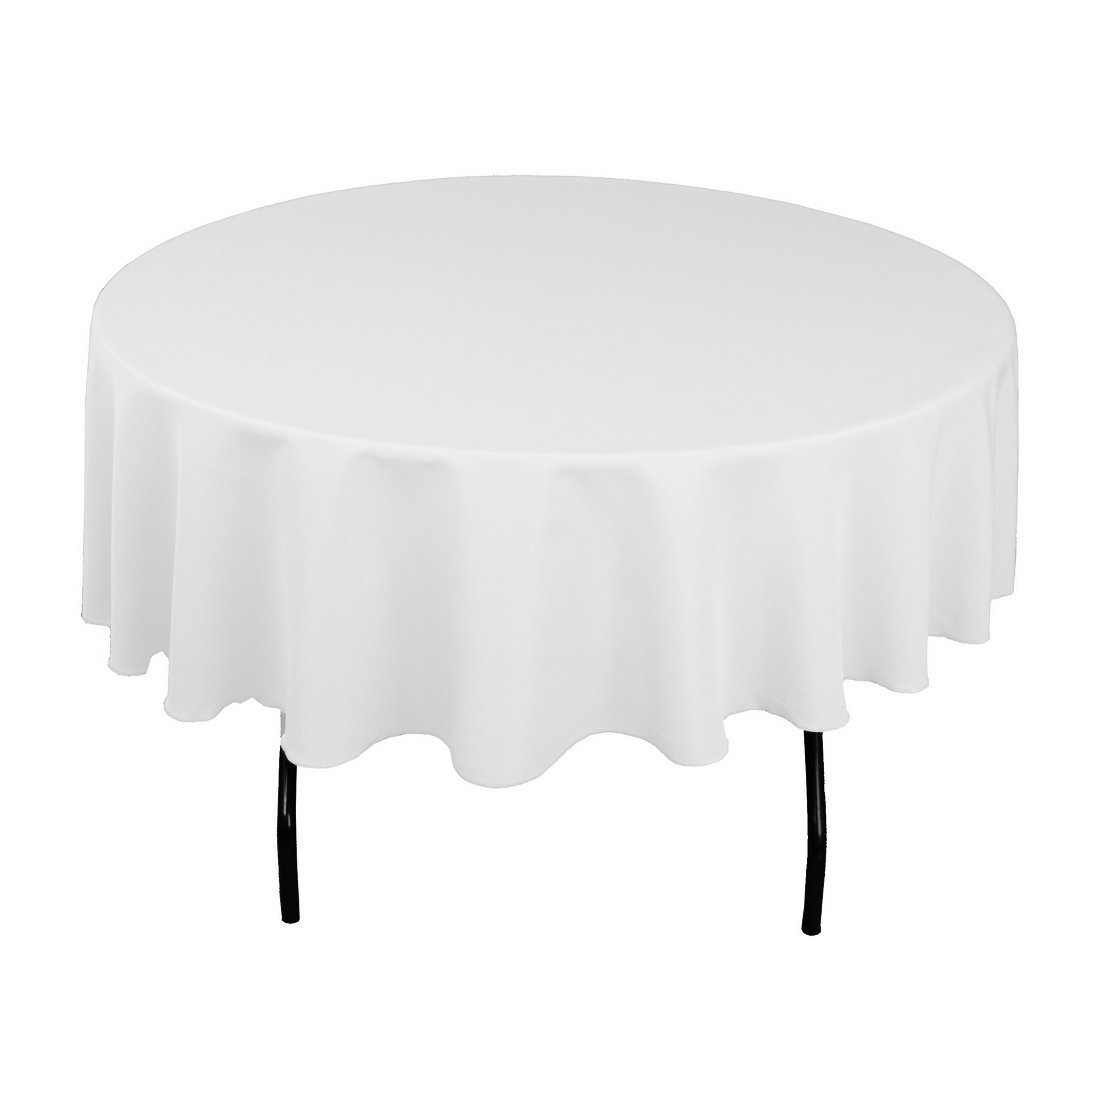 Solid White Tablecloths